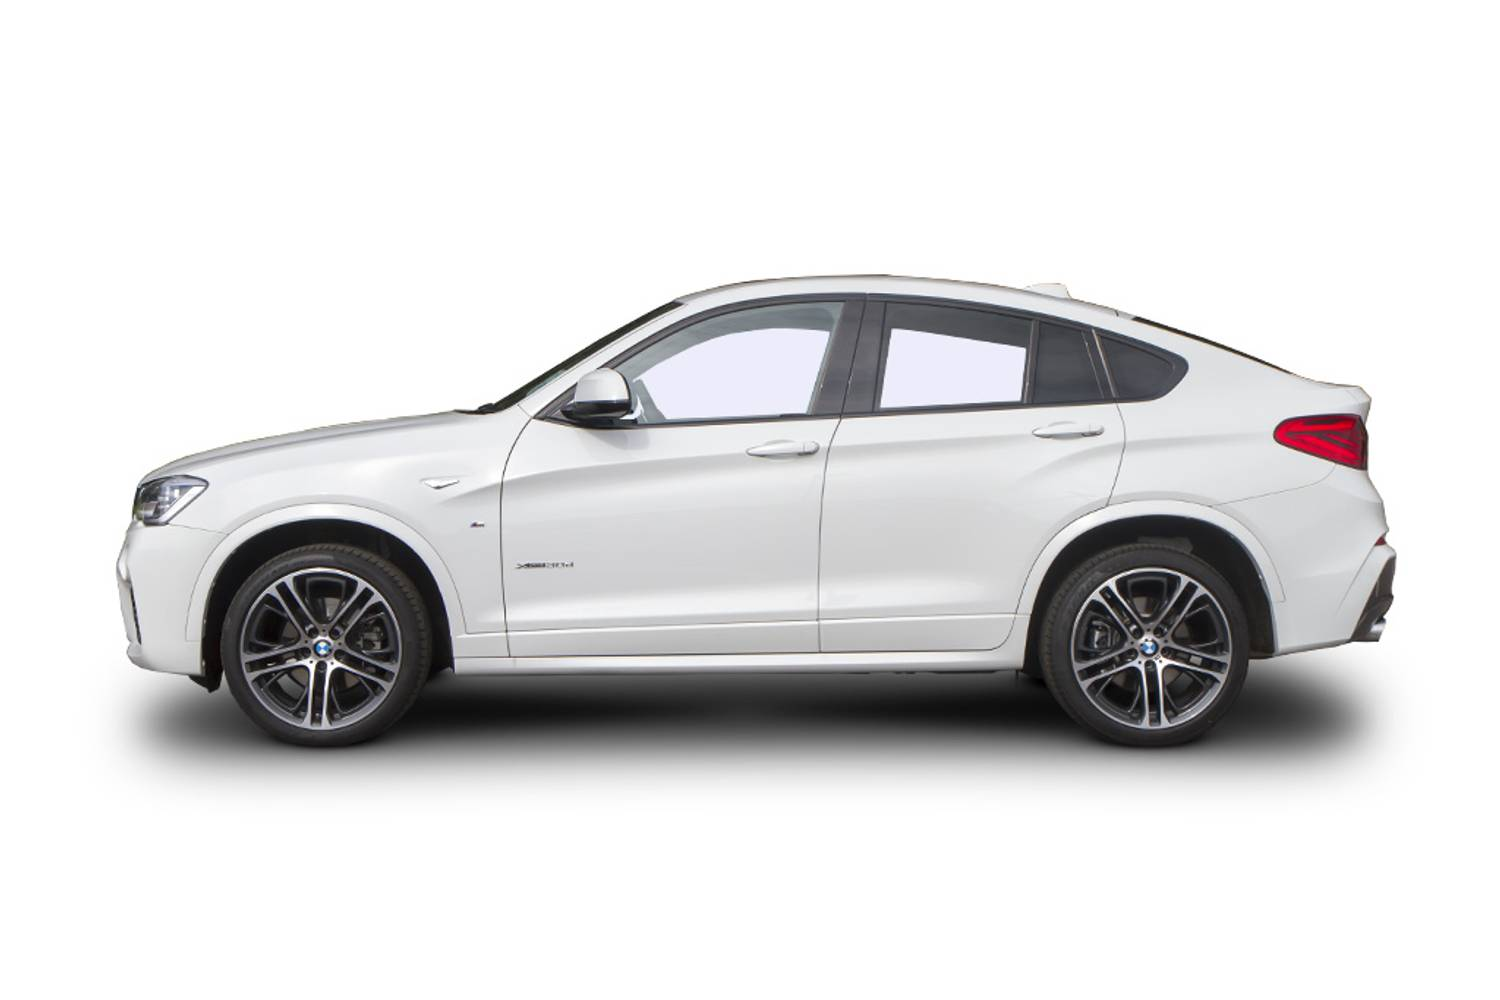 new bmw x4 diesel estate xdrive20d m sport 5 door step. Black Bedroom Furniture Sets. Home Design Ideas